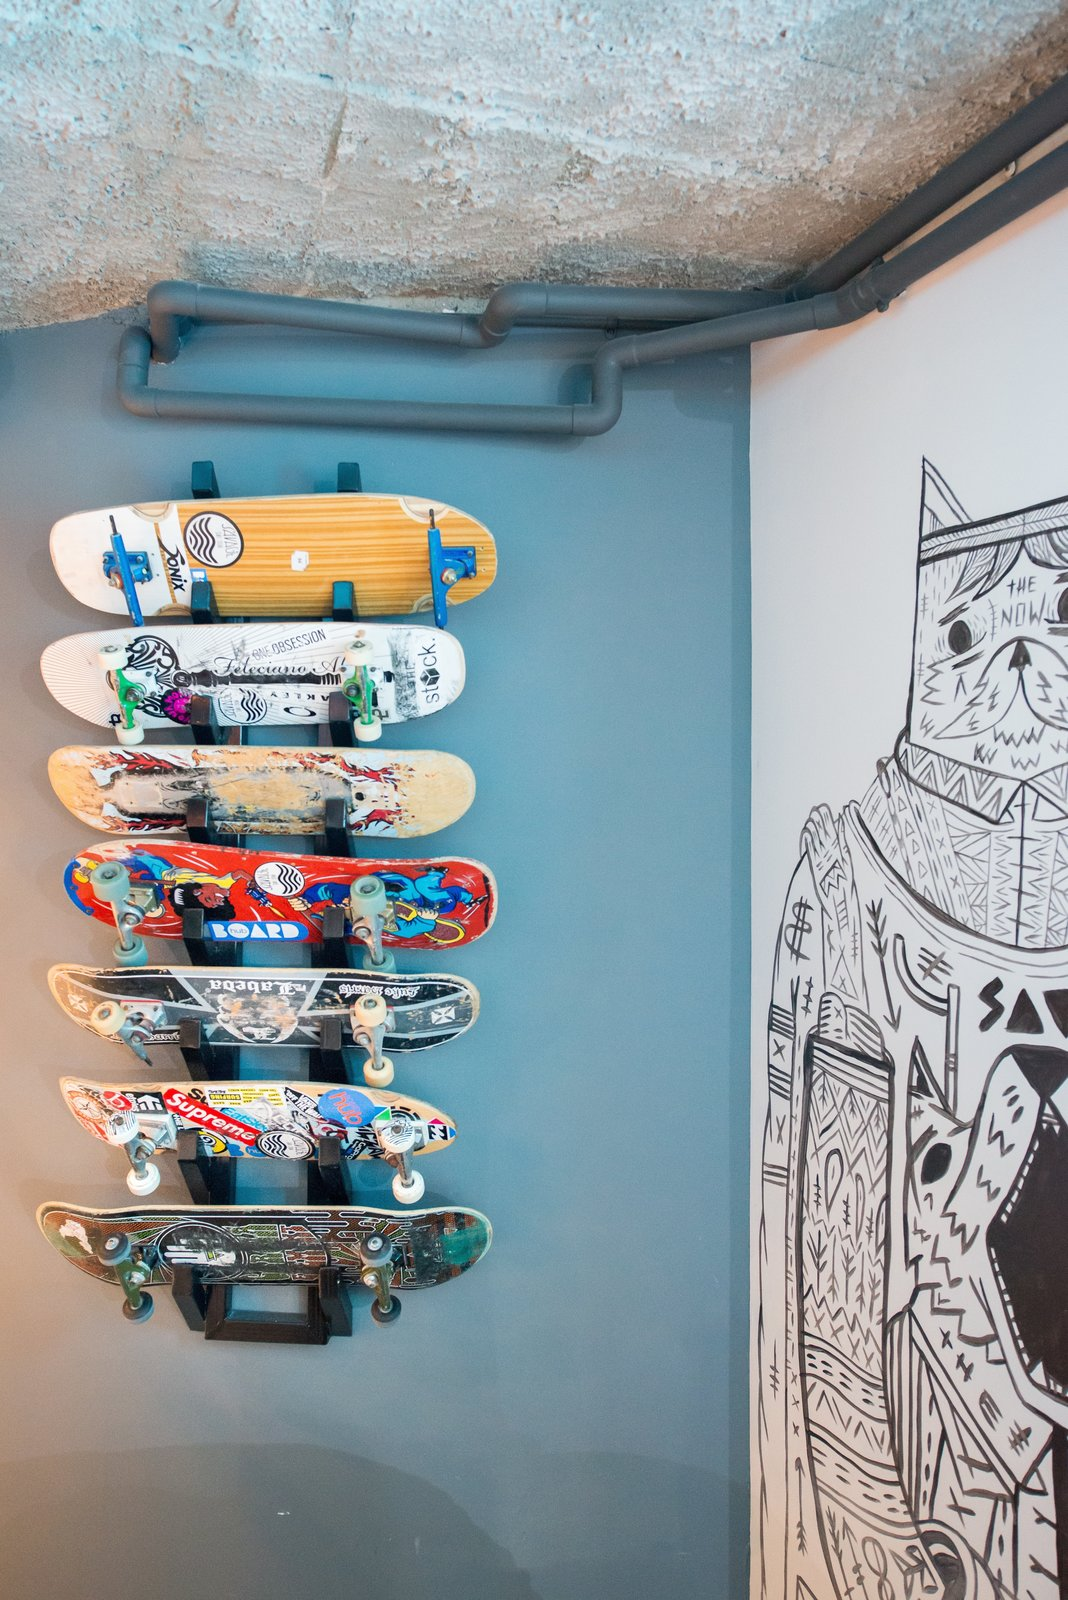 A custom board rack provides a space for showing off prized decks.